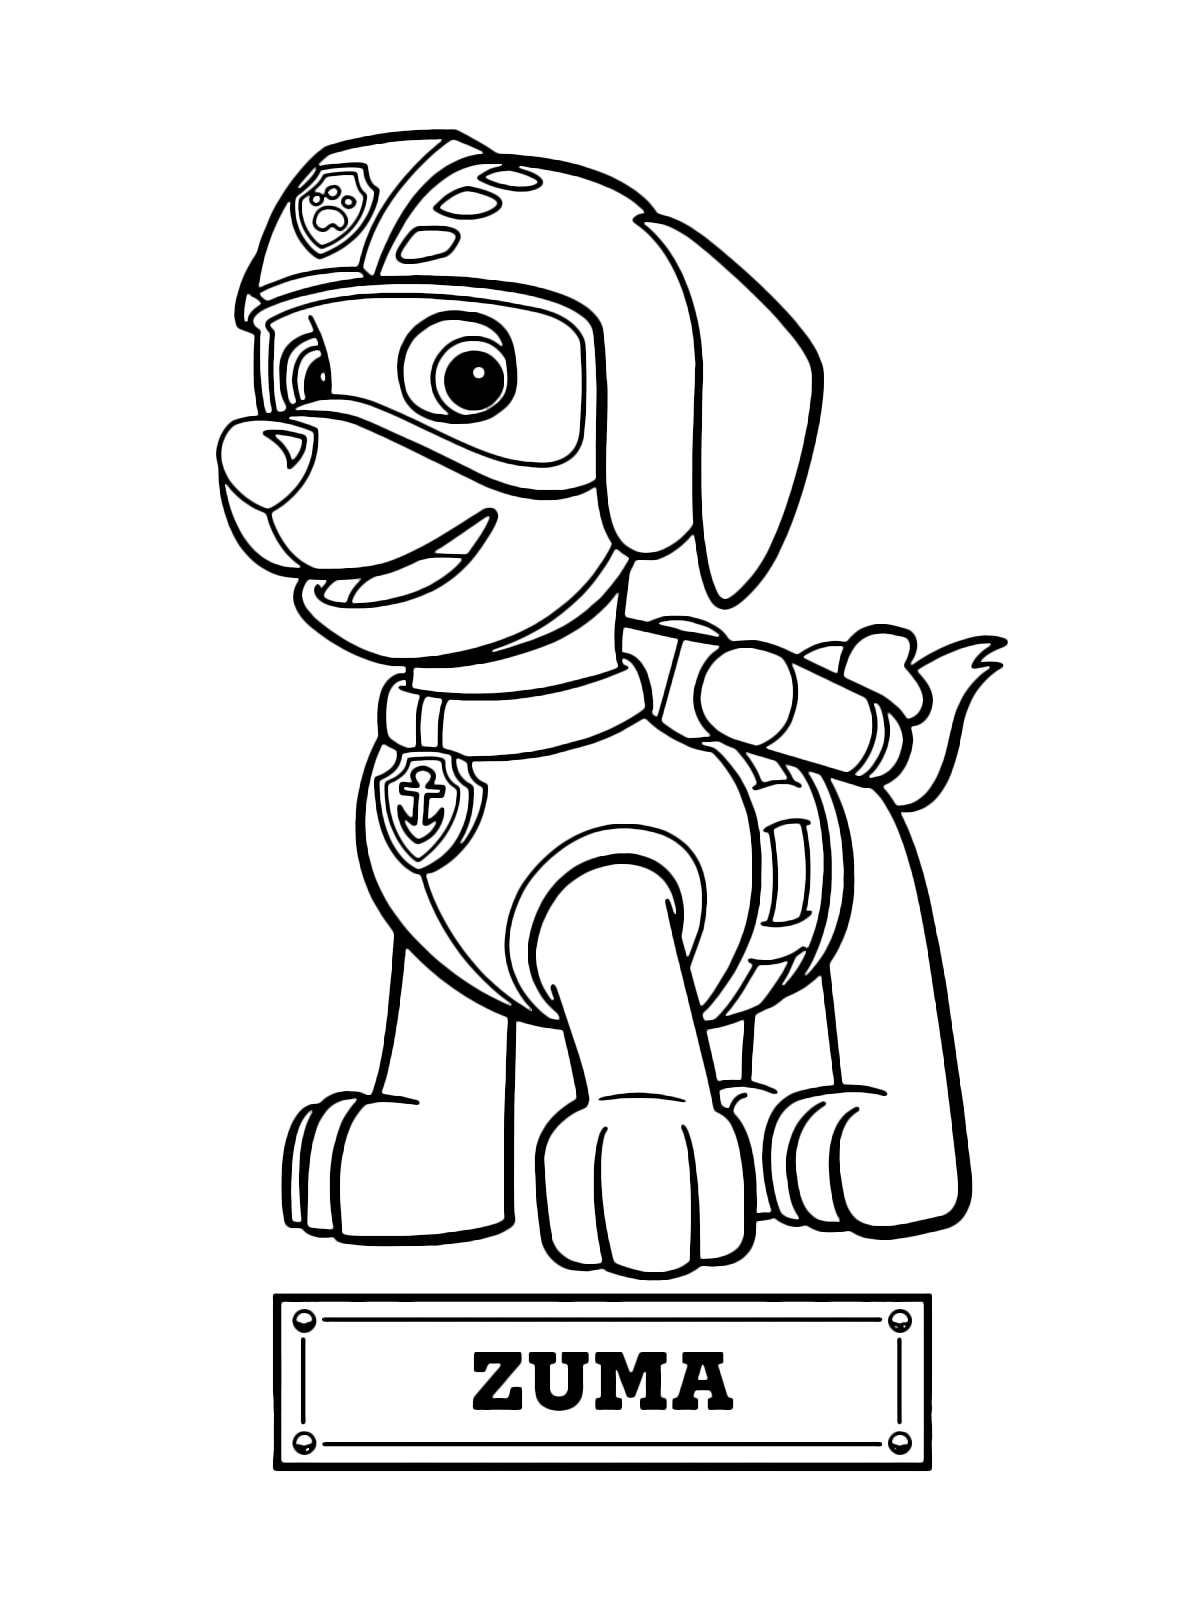 - PAW Patrol - Zuma The Dog For The Water Rescue